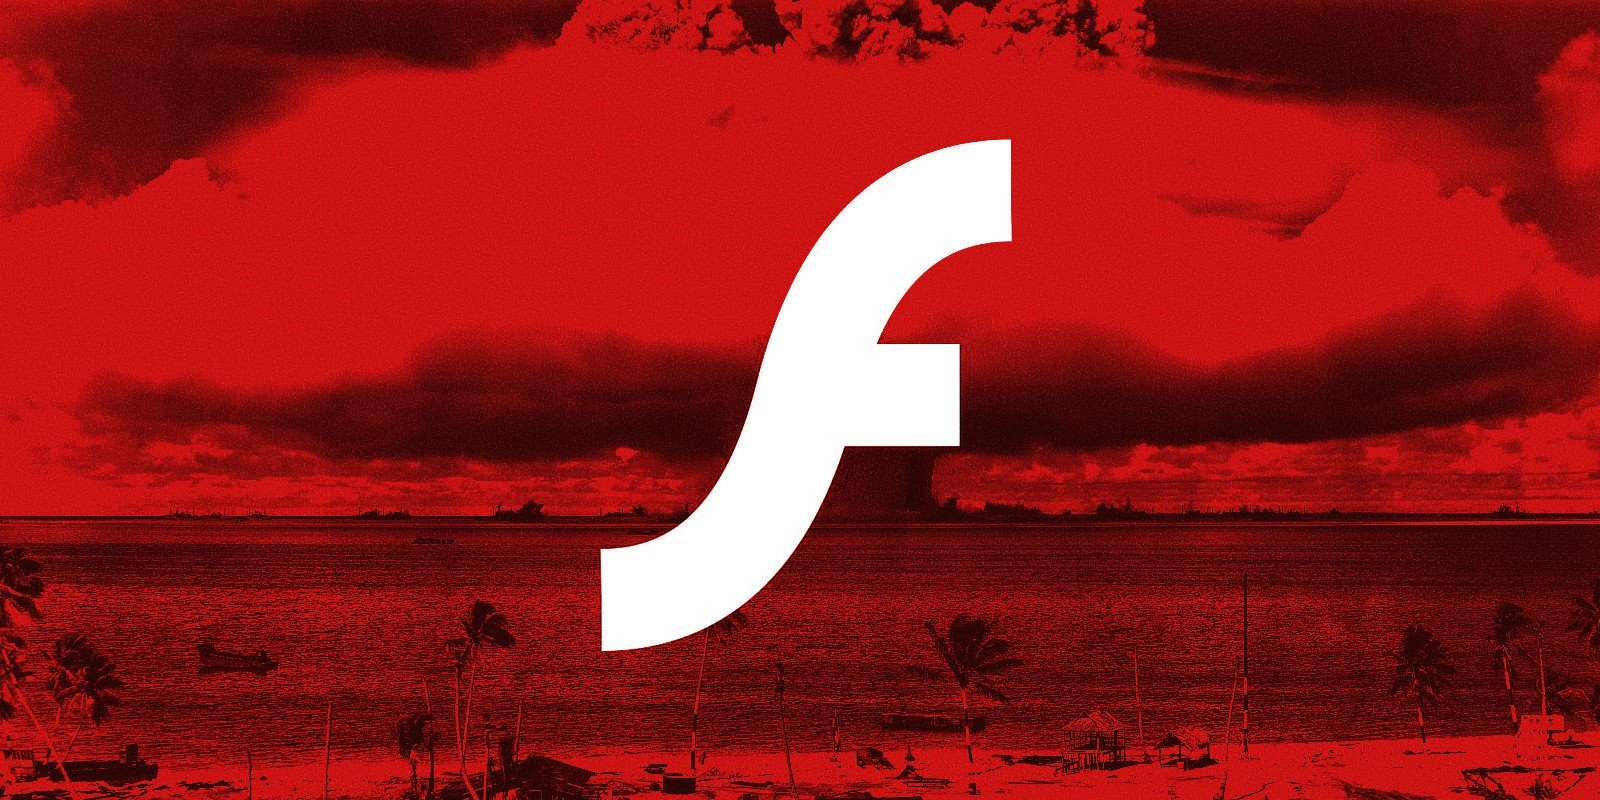 Microsoft to finally kill Adobe Flash support by January 2021